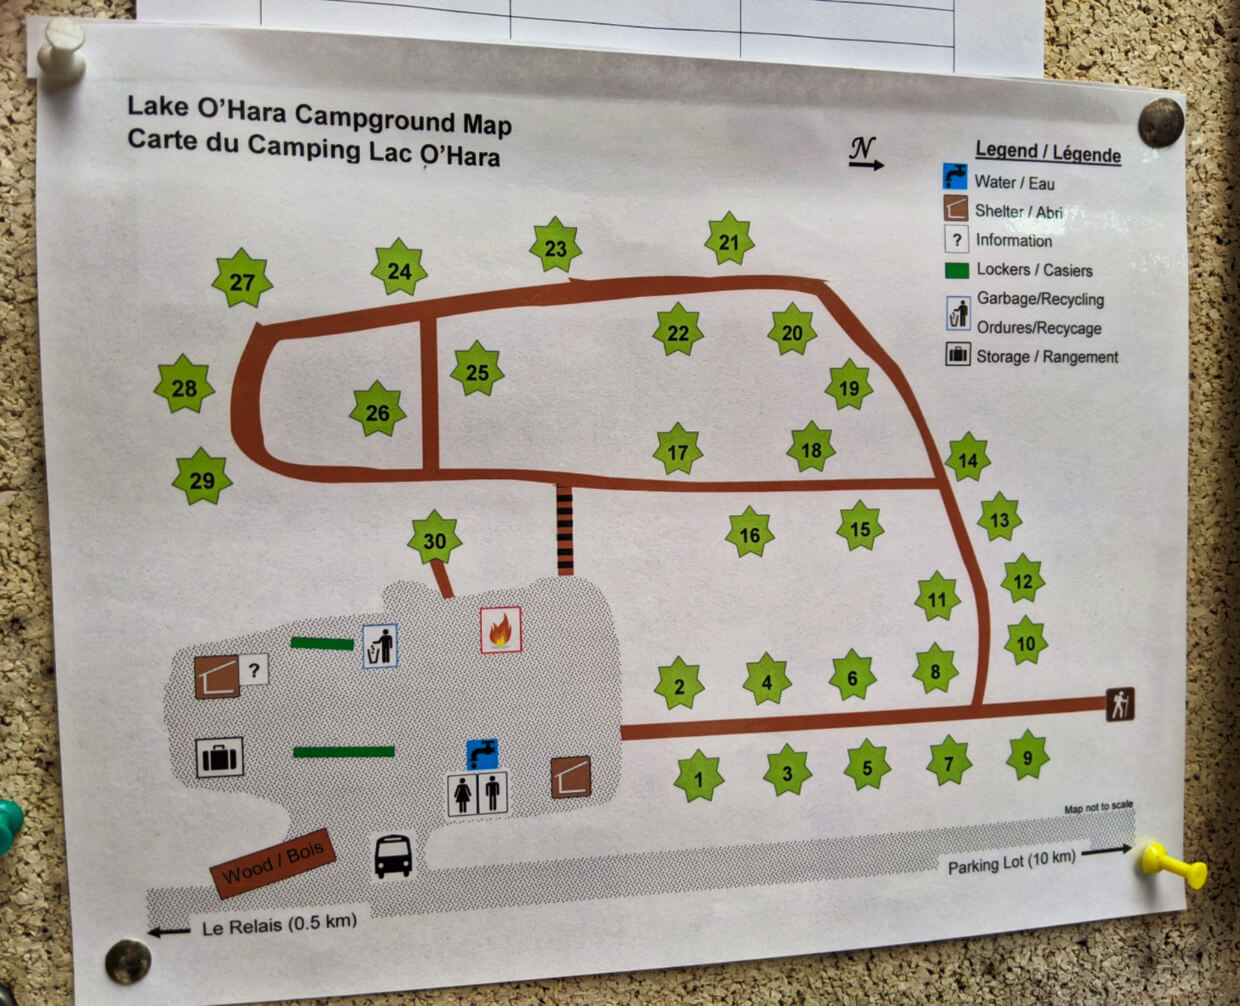 Pinned campground map with campsite numbers and layout with washrooms, bus stop, shelters and pathways